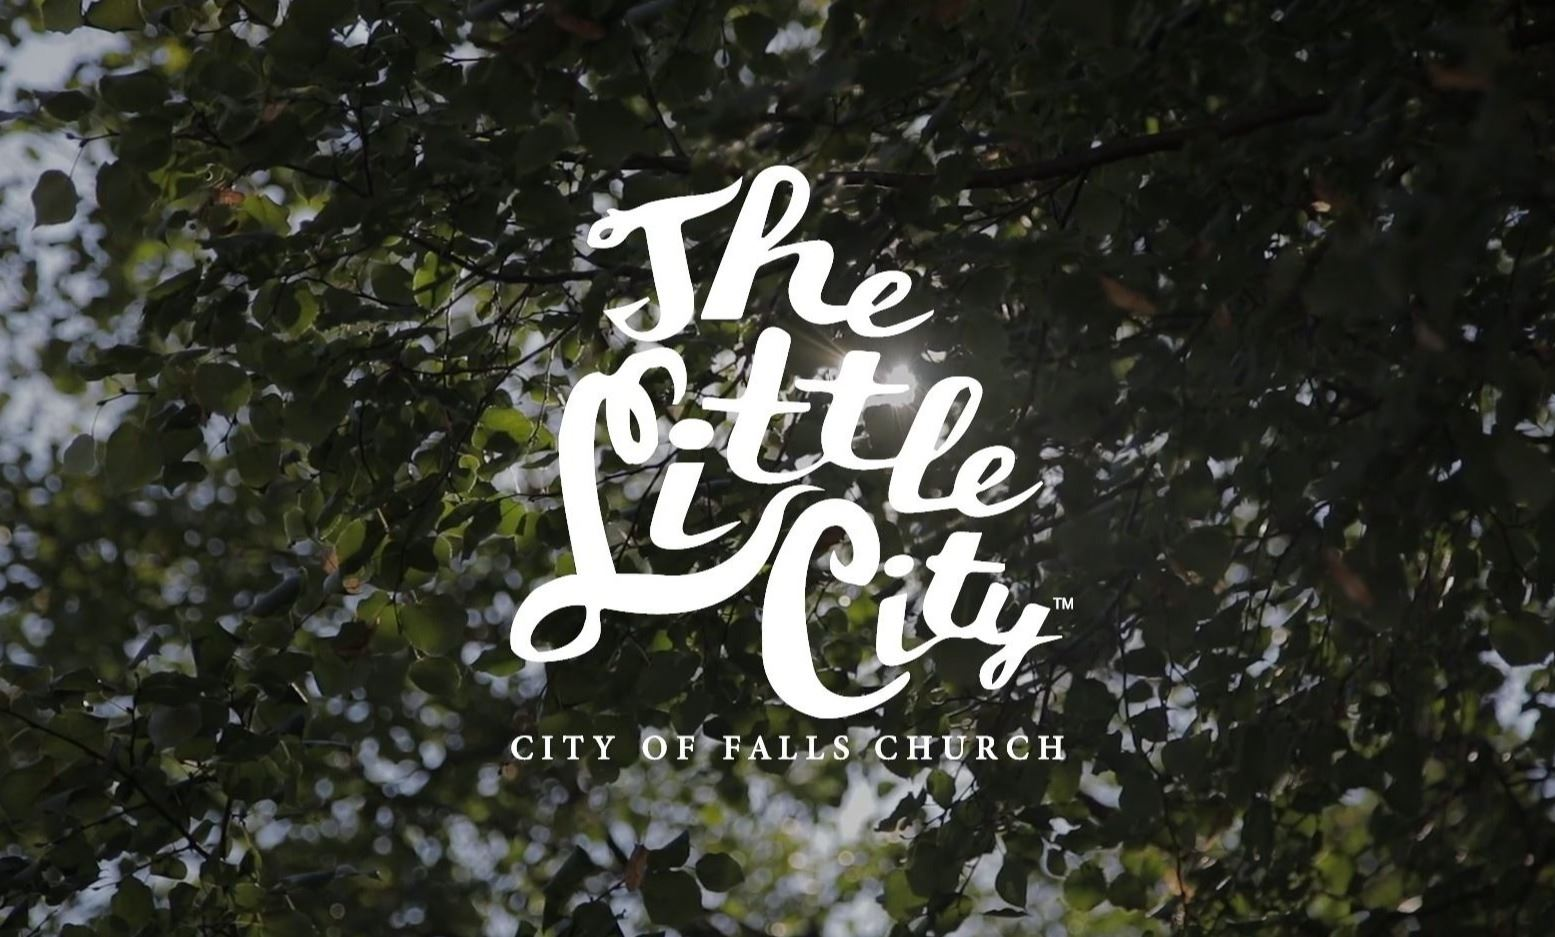 The Little City